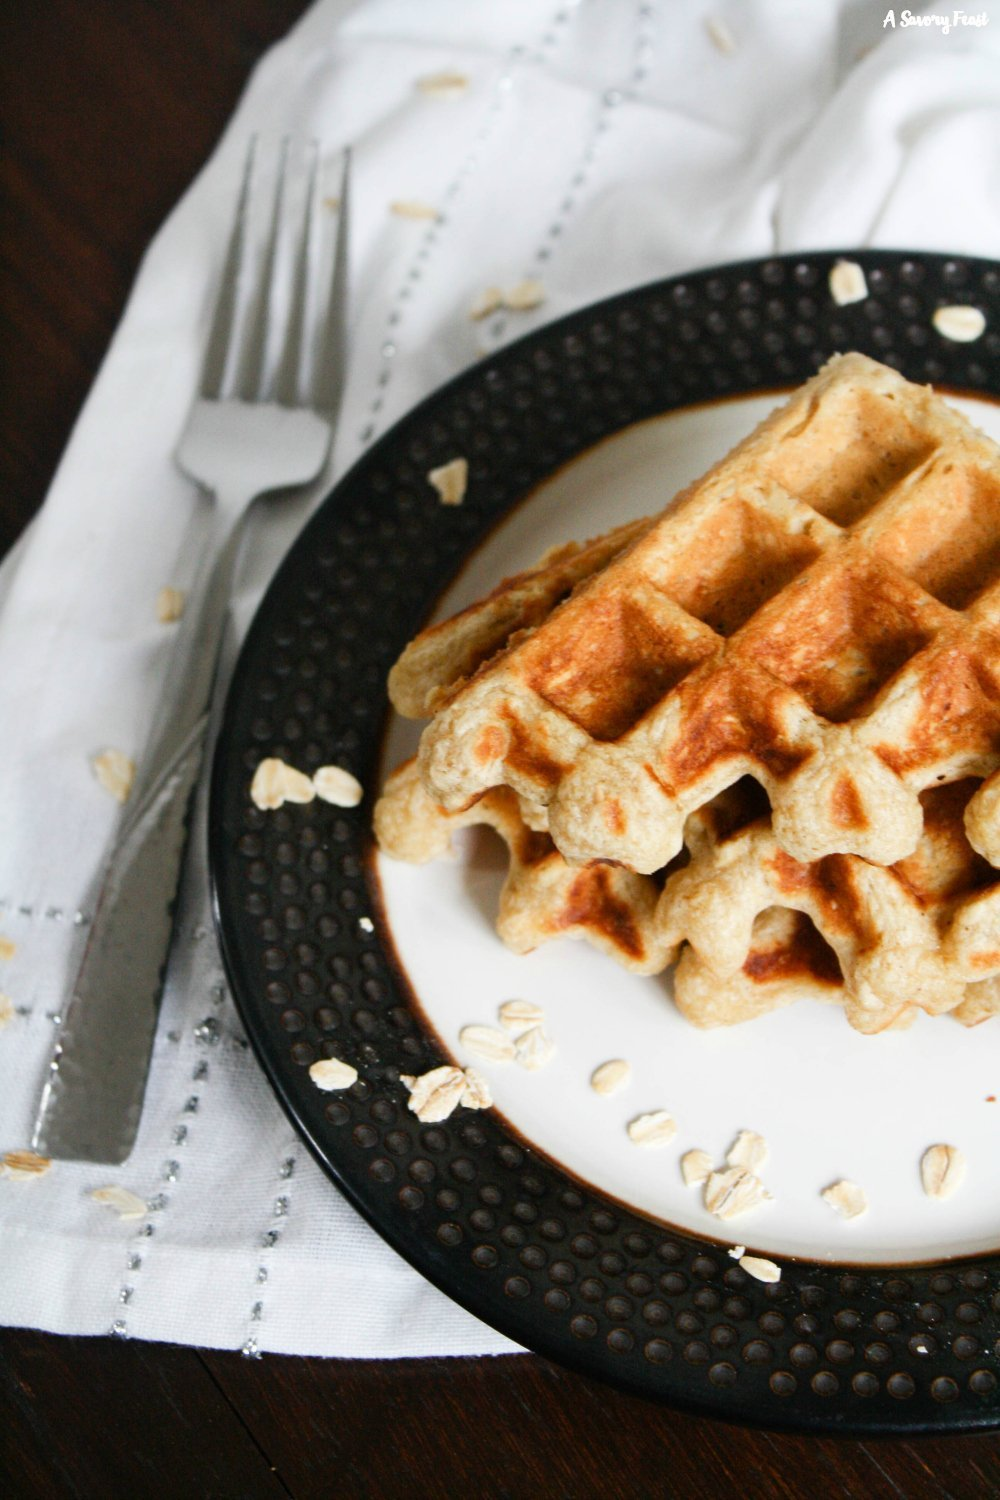 Waffles from scratch with oats in the batter